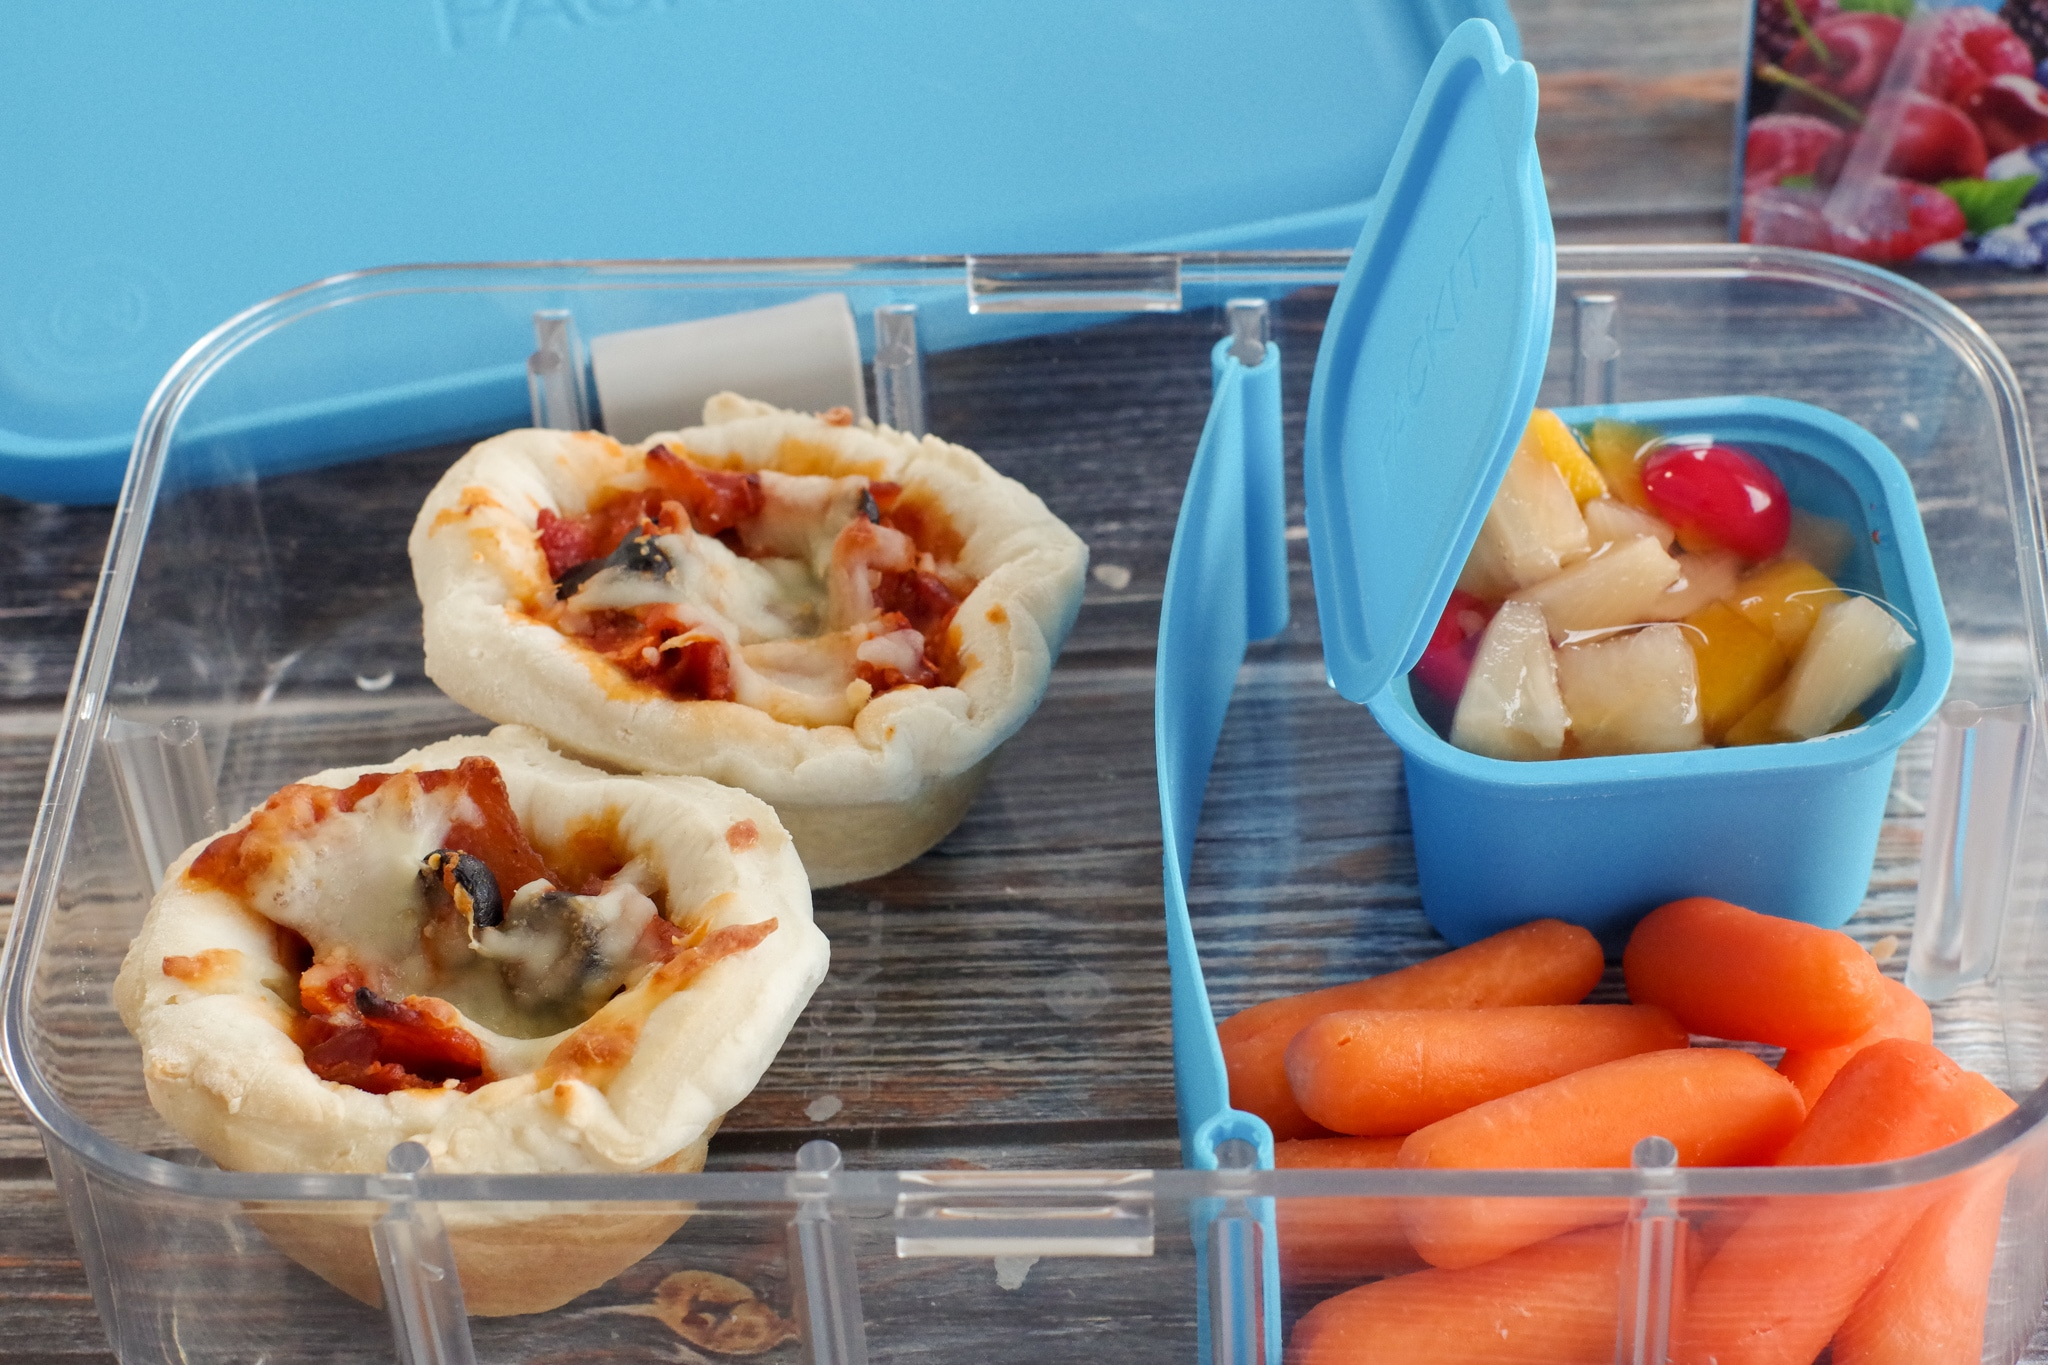 2 pizza cupcakes in a clear bento box with blue dividers, with baby carrots in one section and fruit cup in a small container in another